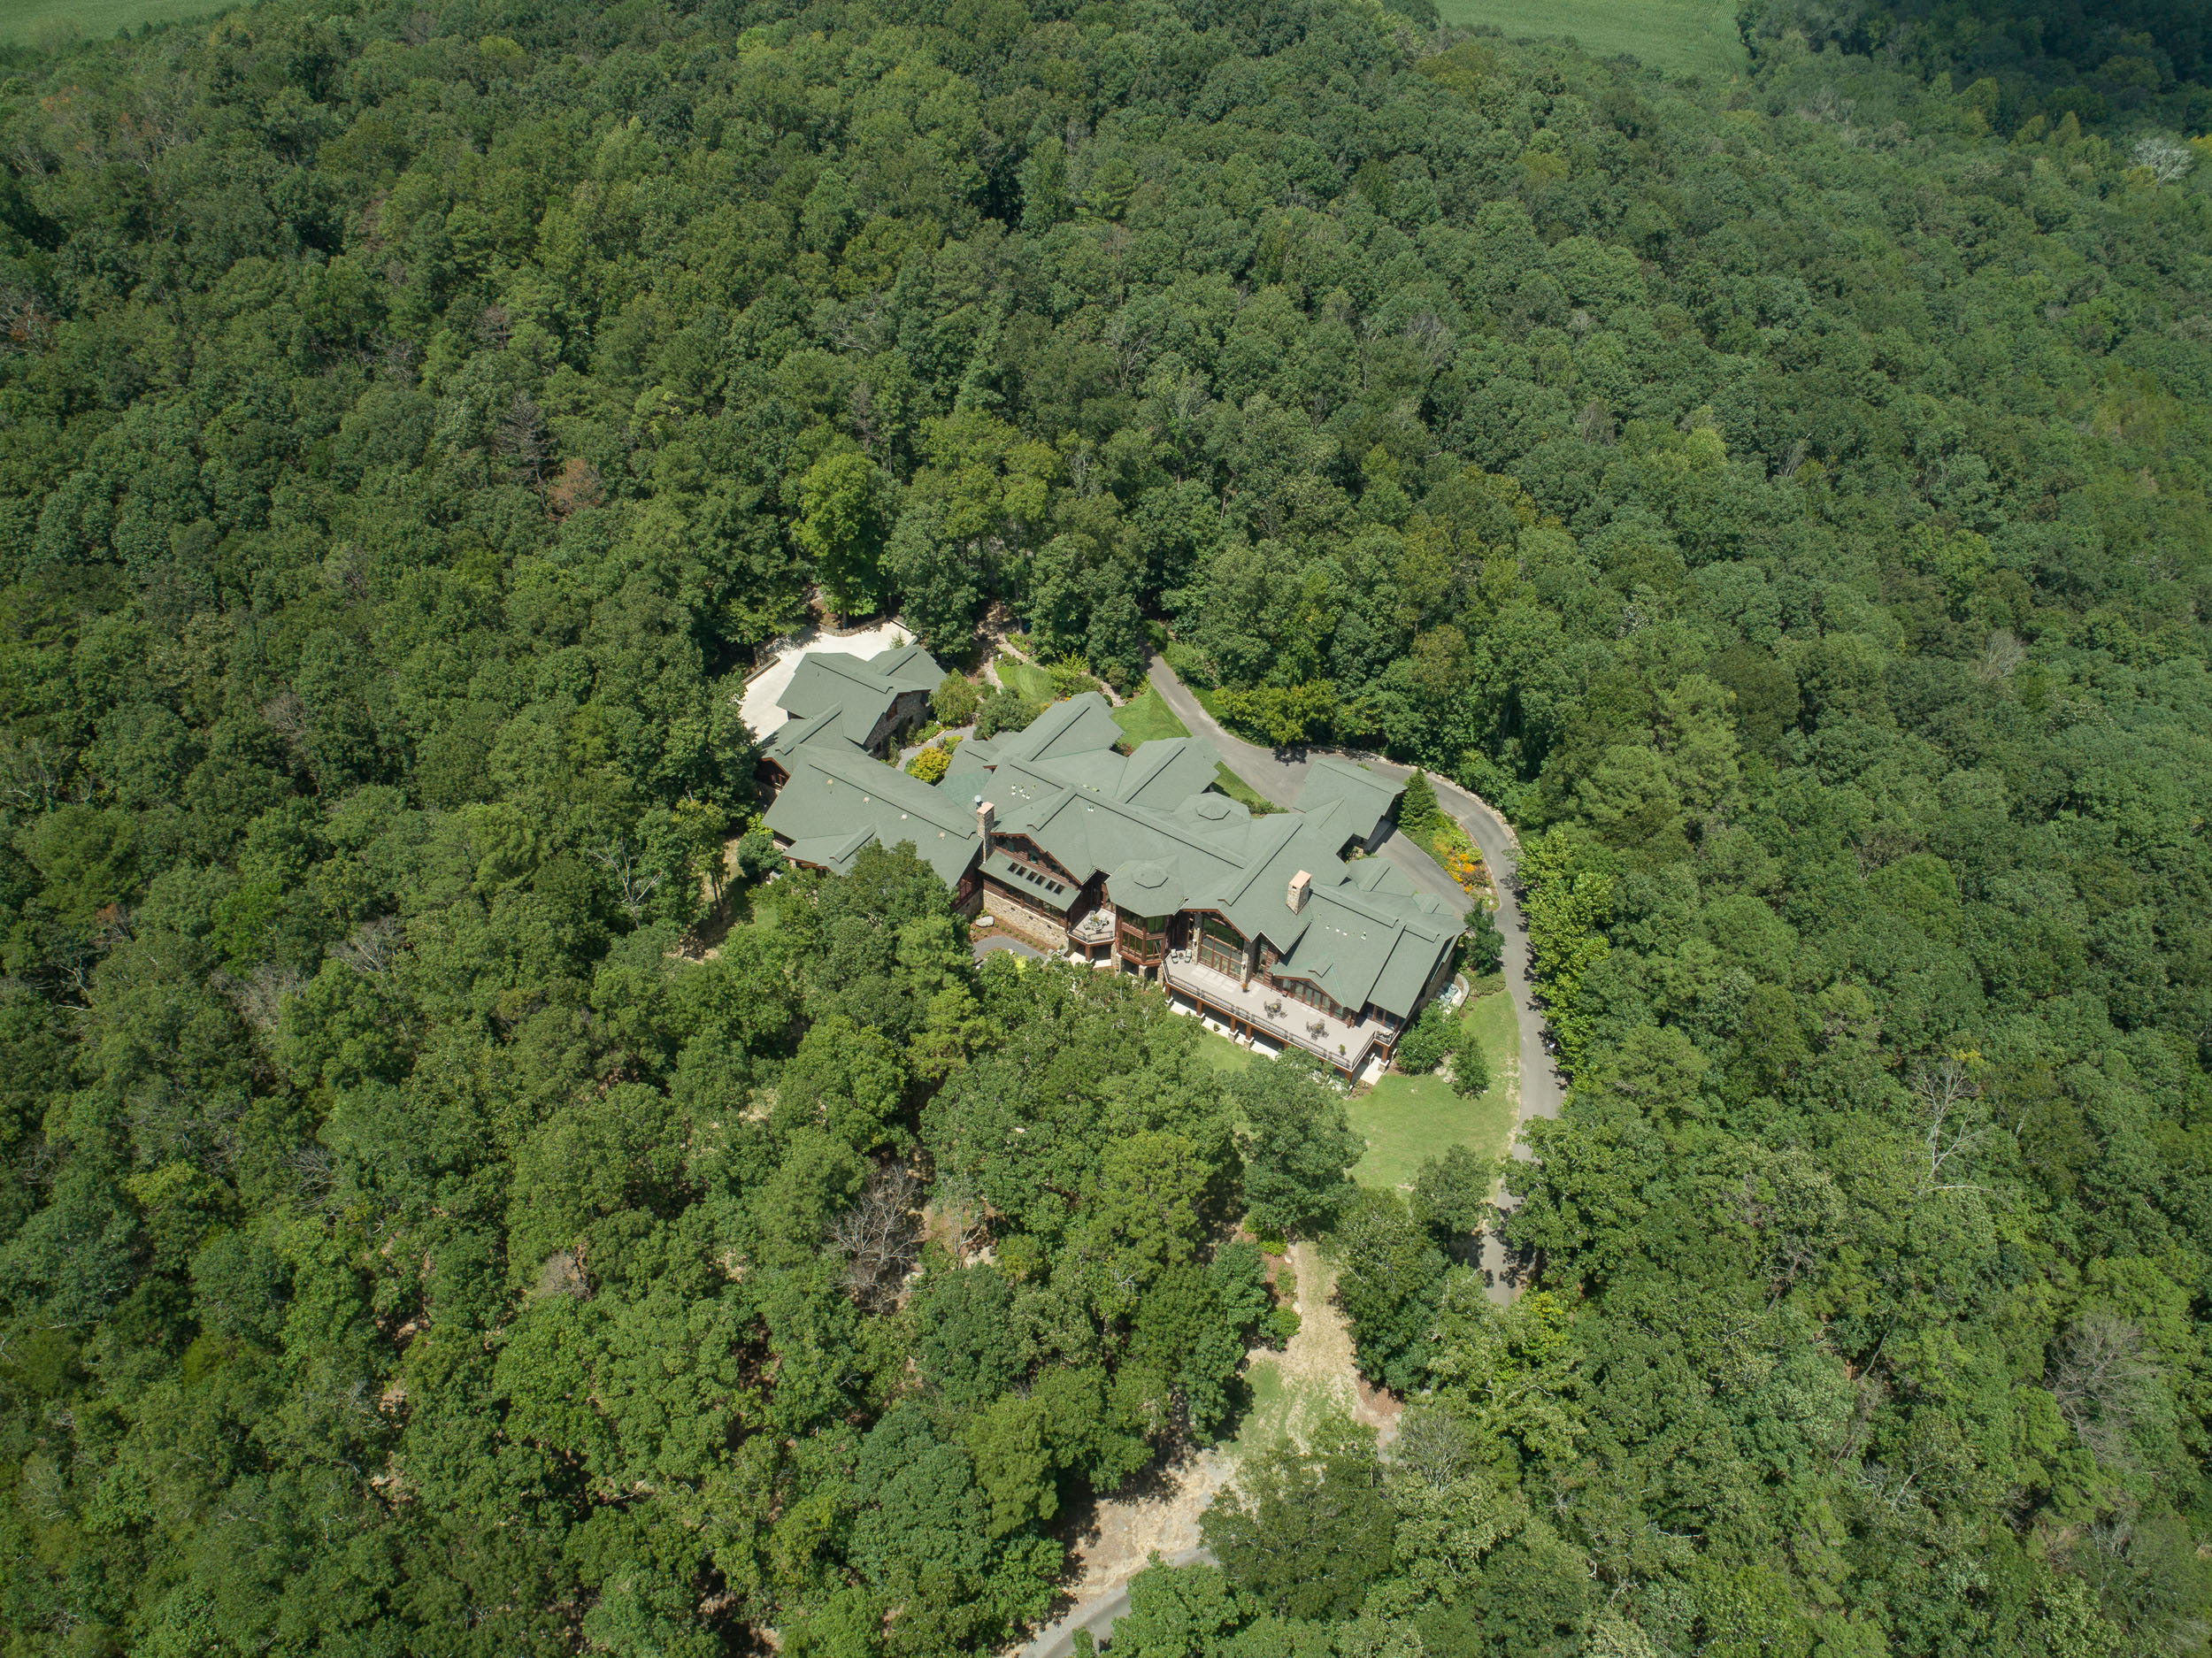 cullman-aerial-real-estate-photography-22.jpg